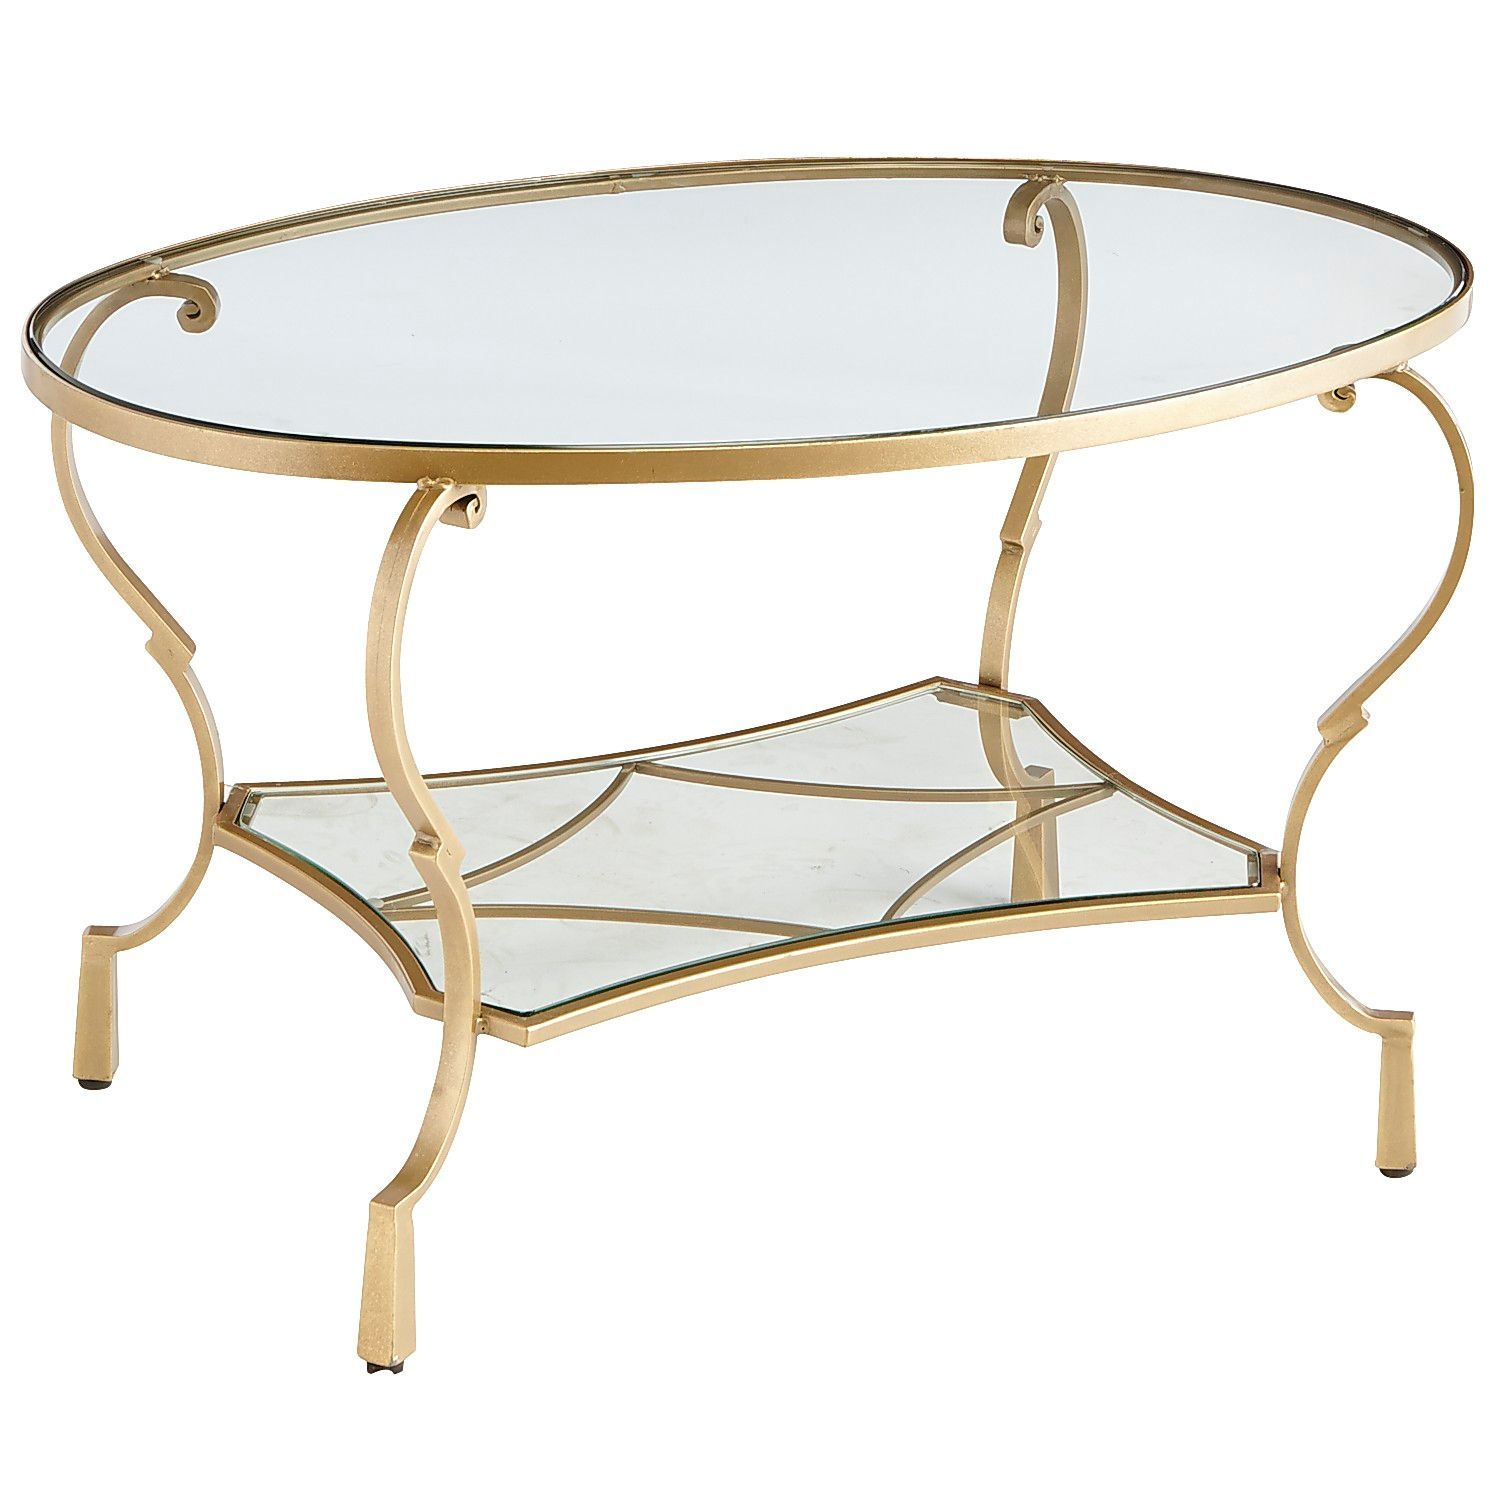 Chasca Glass Top Gold Oval Coffee Table Glass Top Coffee Table